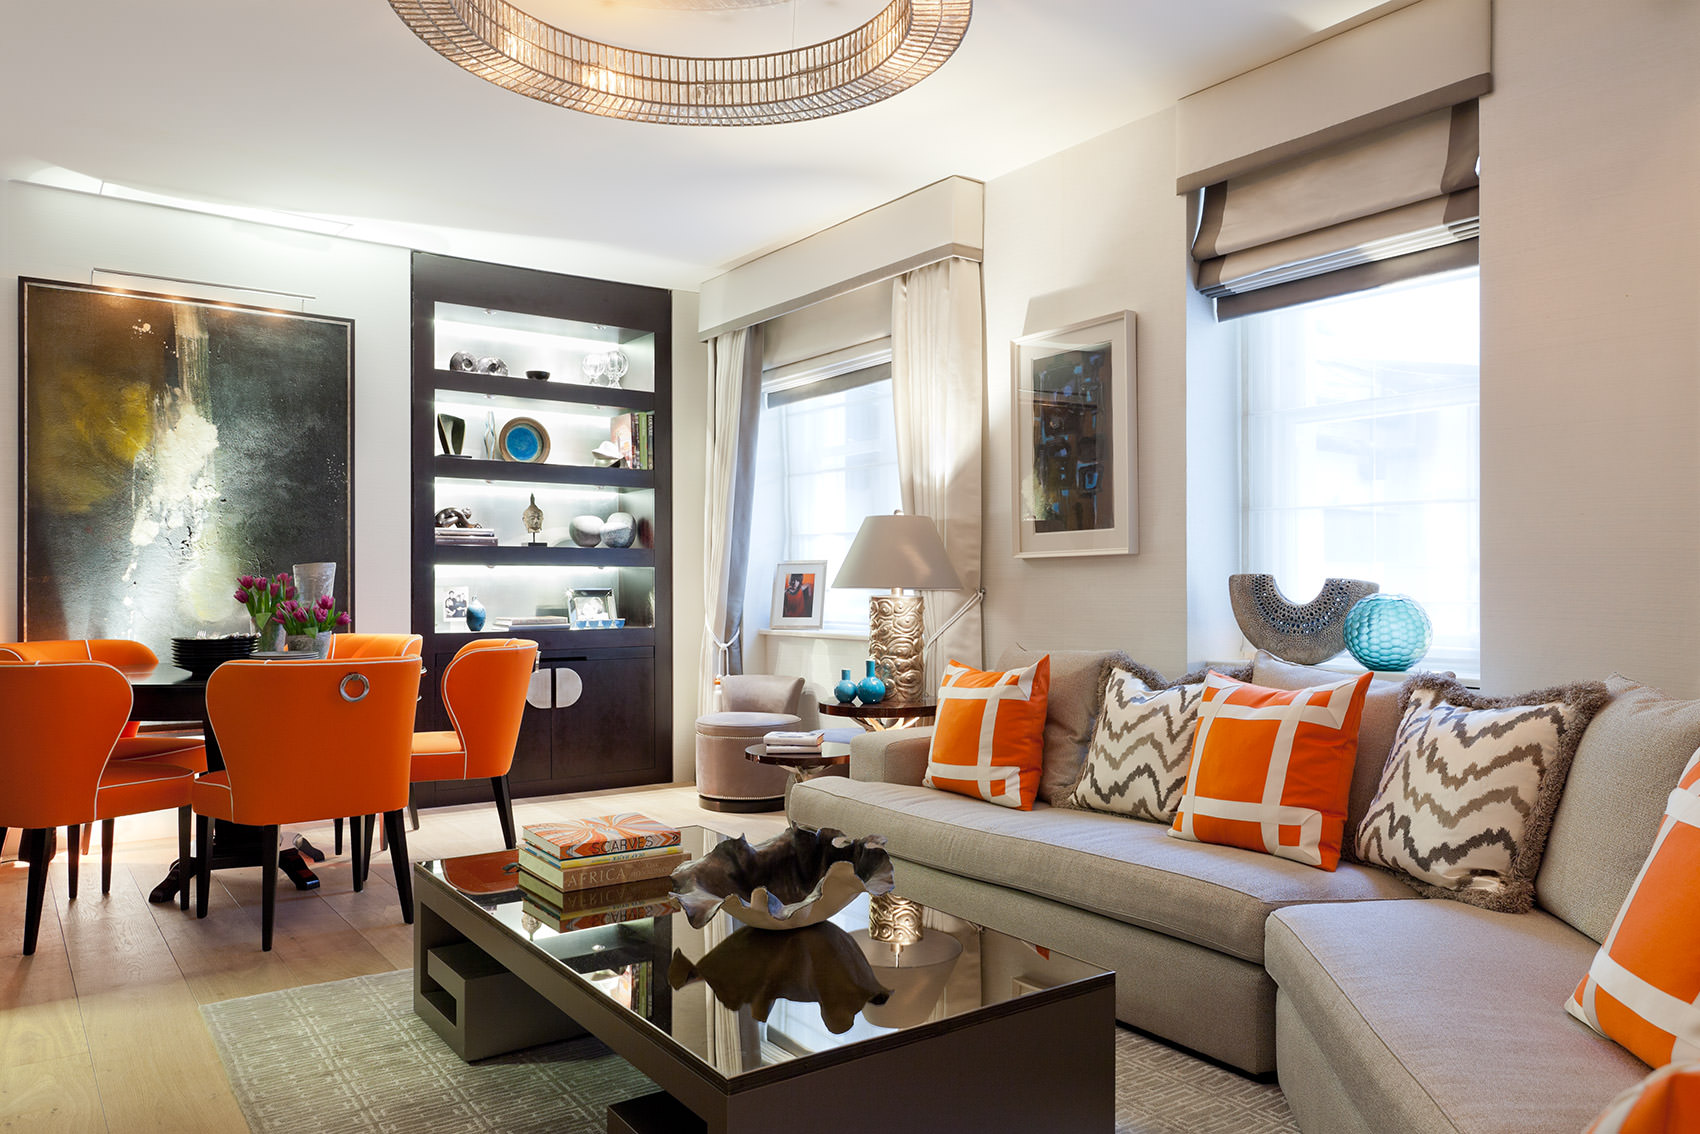 South street taylor howes for London living room ideas